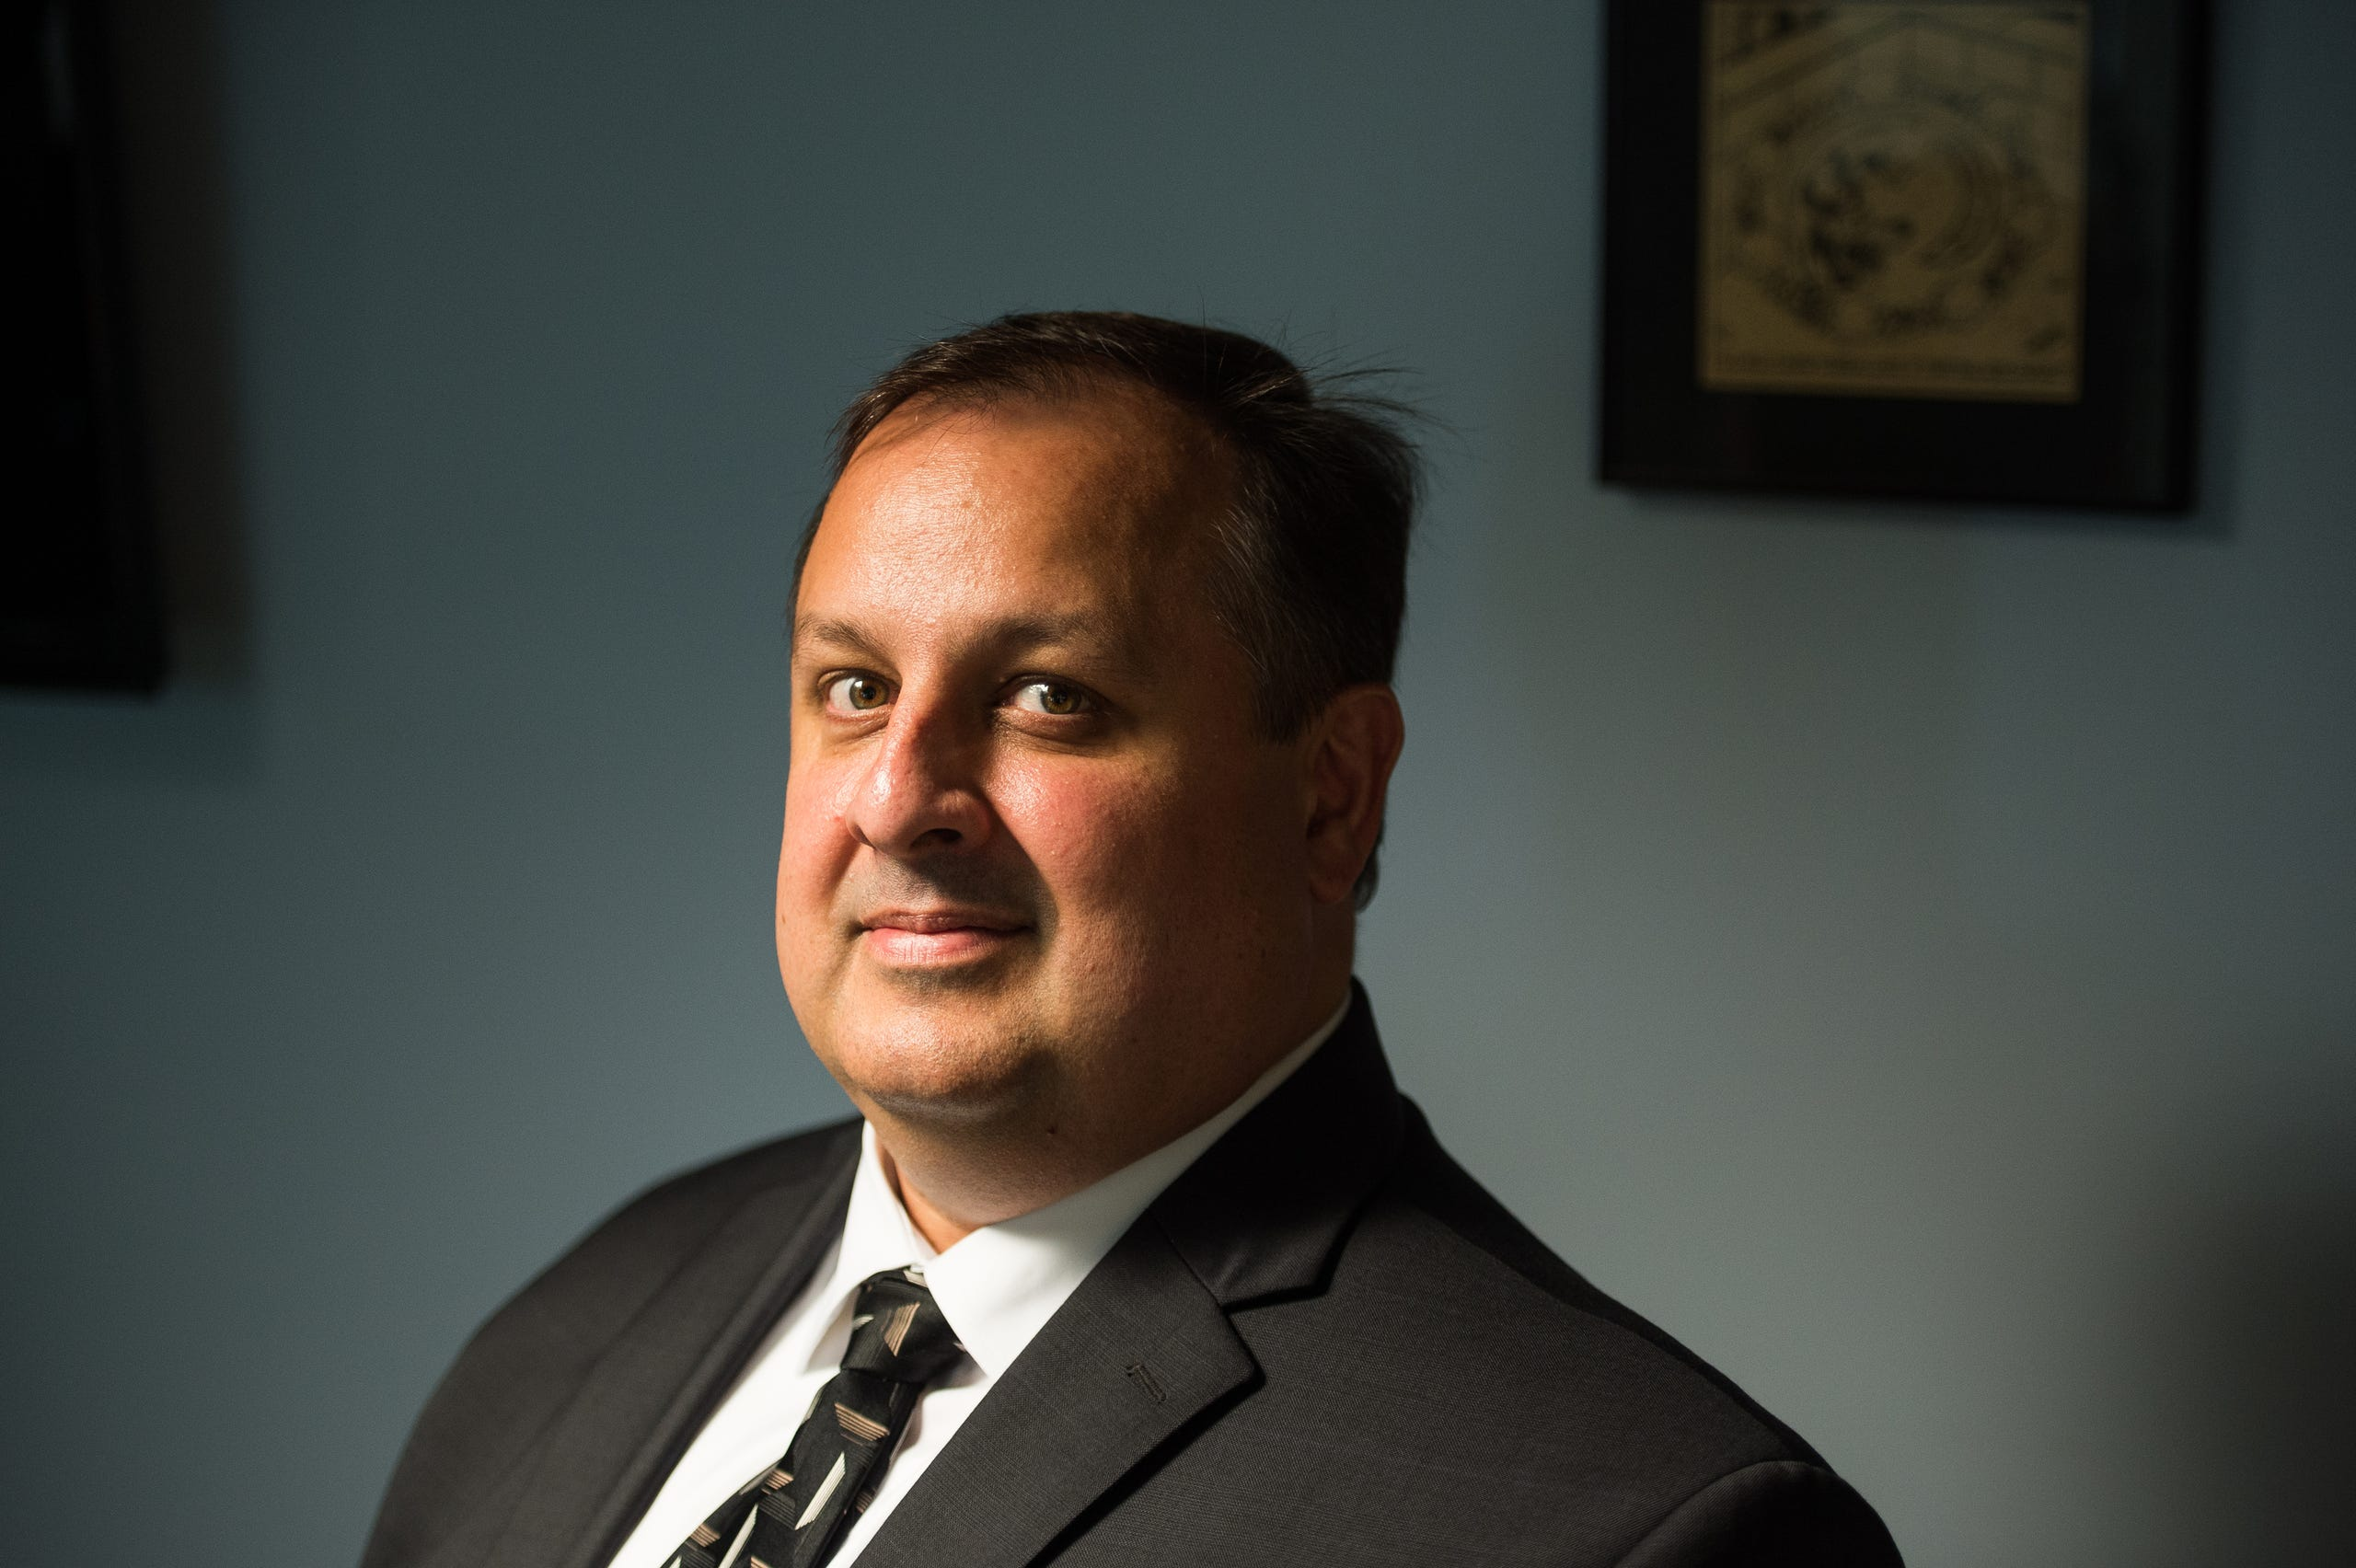 Walter Shaub resigned his post as director of the United States Office of Government Ethics on July 6, 2017. Shaub, who prodded President Donald Trump's administration over conflicts of interest resigned to take a new job, at the Campaign Legal Center, a nonprofit in Washington that mostly focuses on violations of campaign finance law.